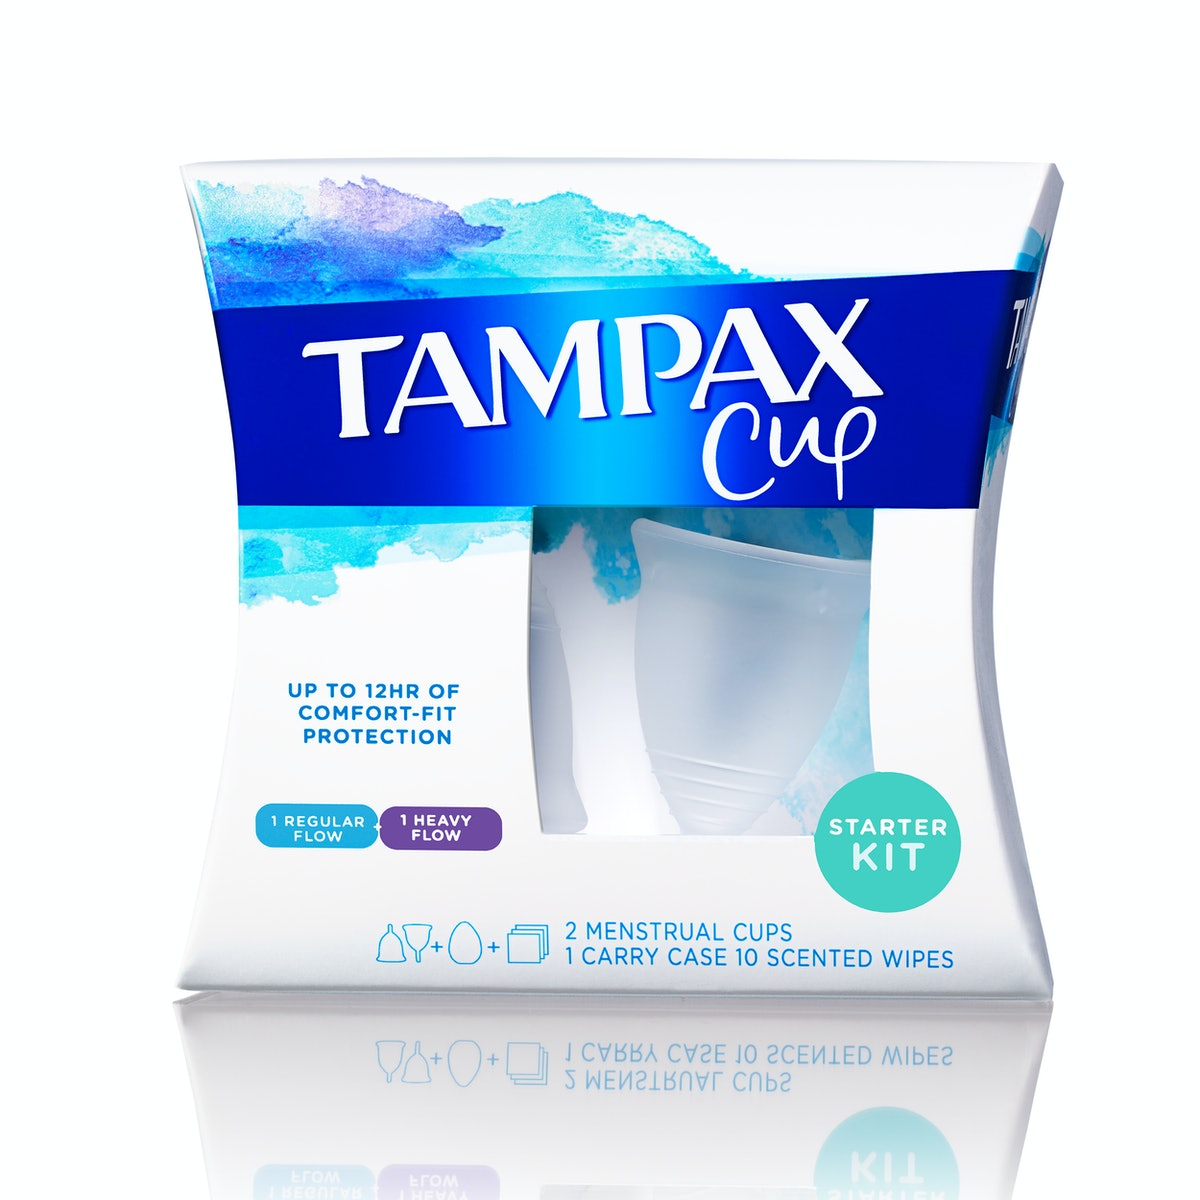 Tampax Menstrual Cup Just Launched & It's A Brand New Period Option